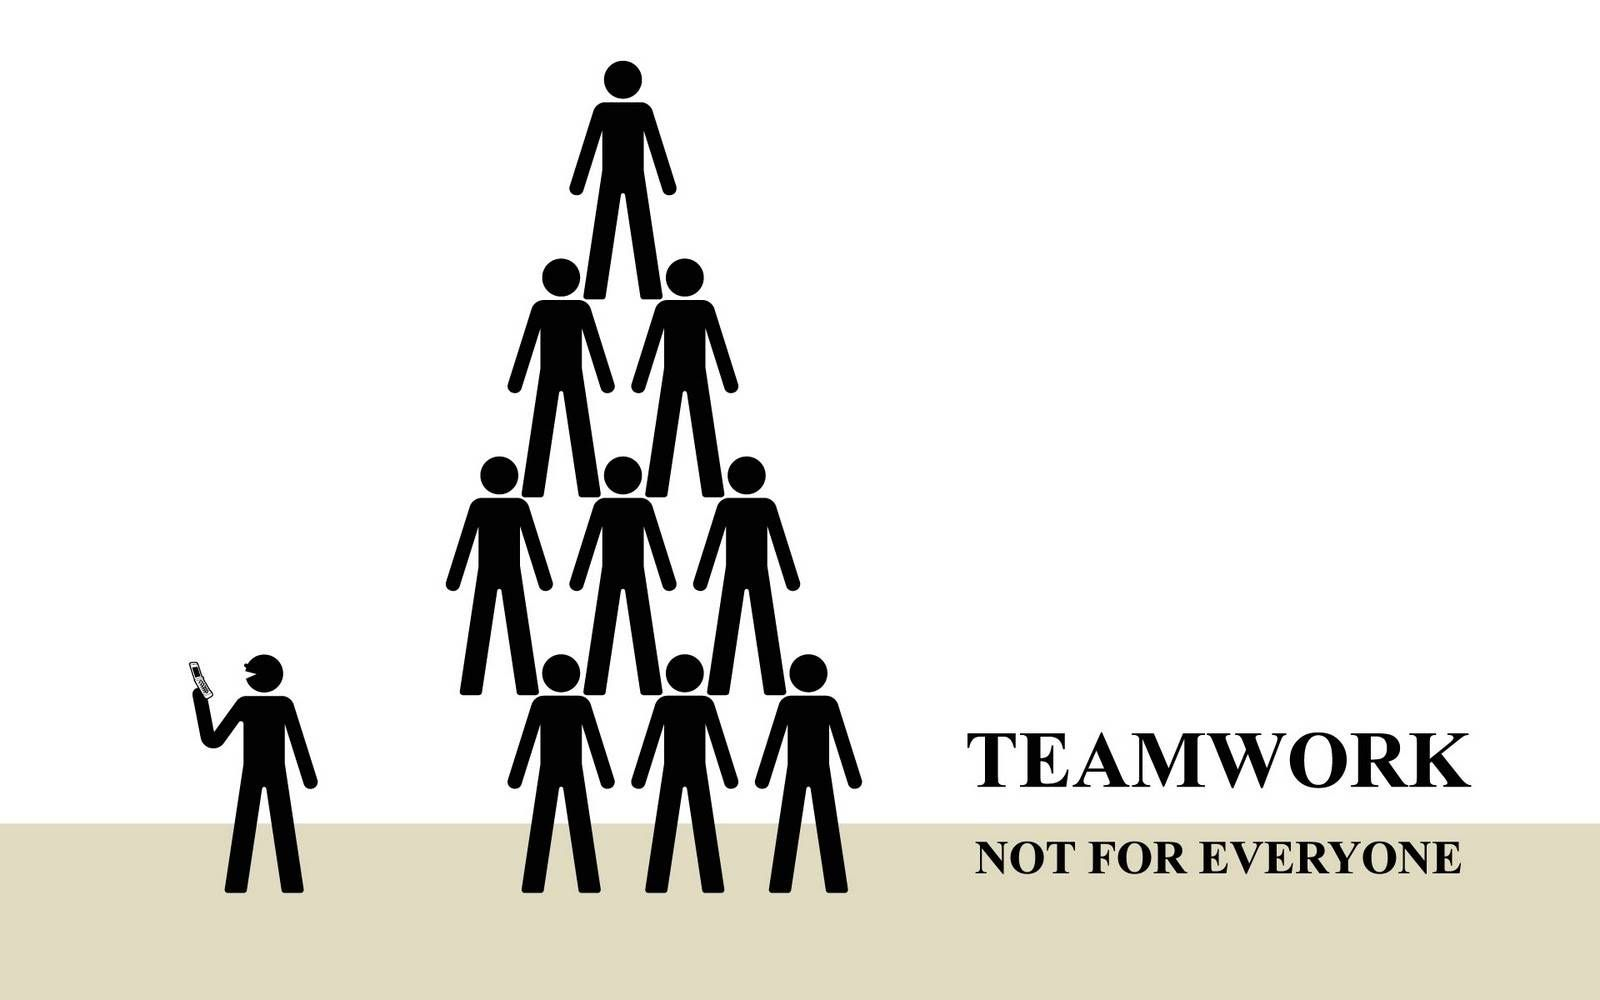 Funny Work Quotes about team work it means work